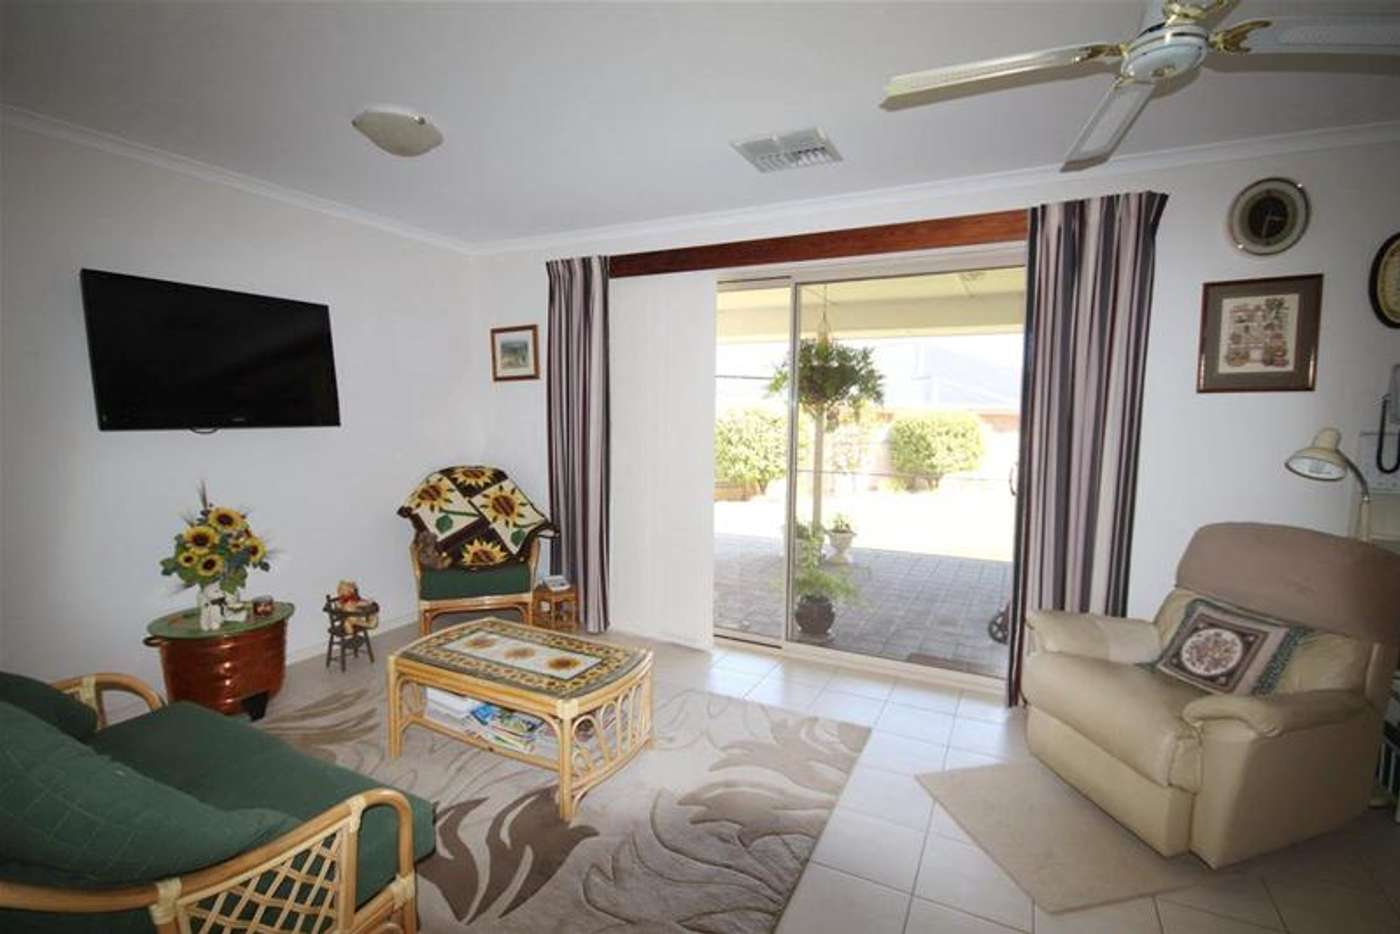 Fifth view of Homely house listing, 4 Paddlesteamer Way, Mannum SA 5238